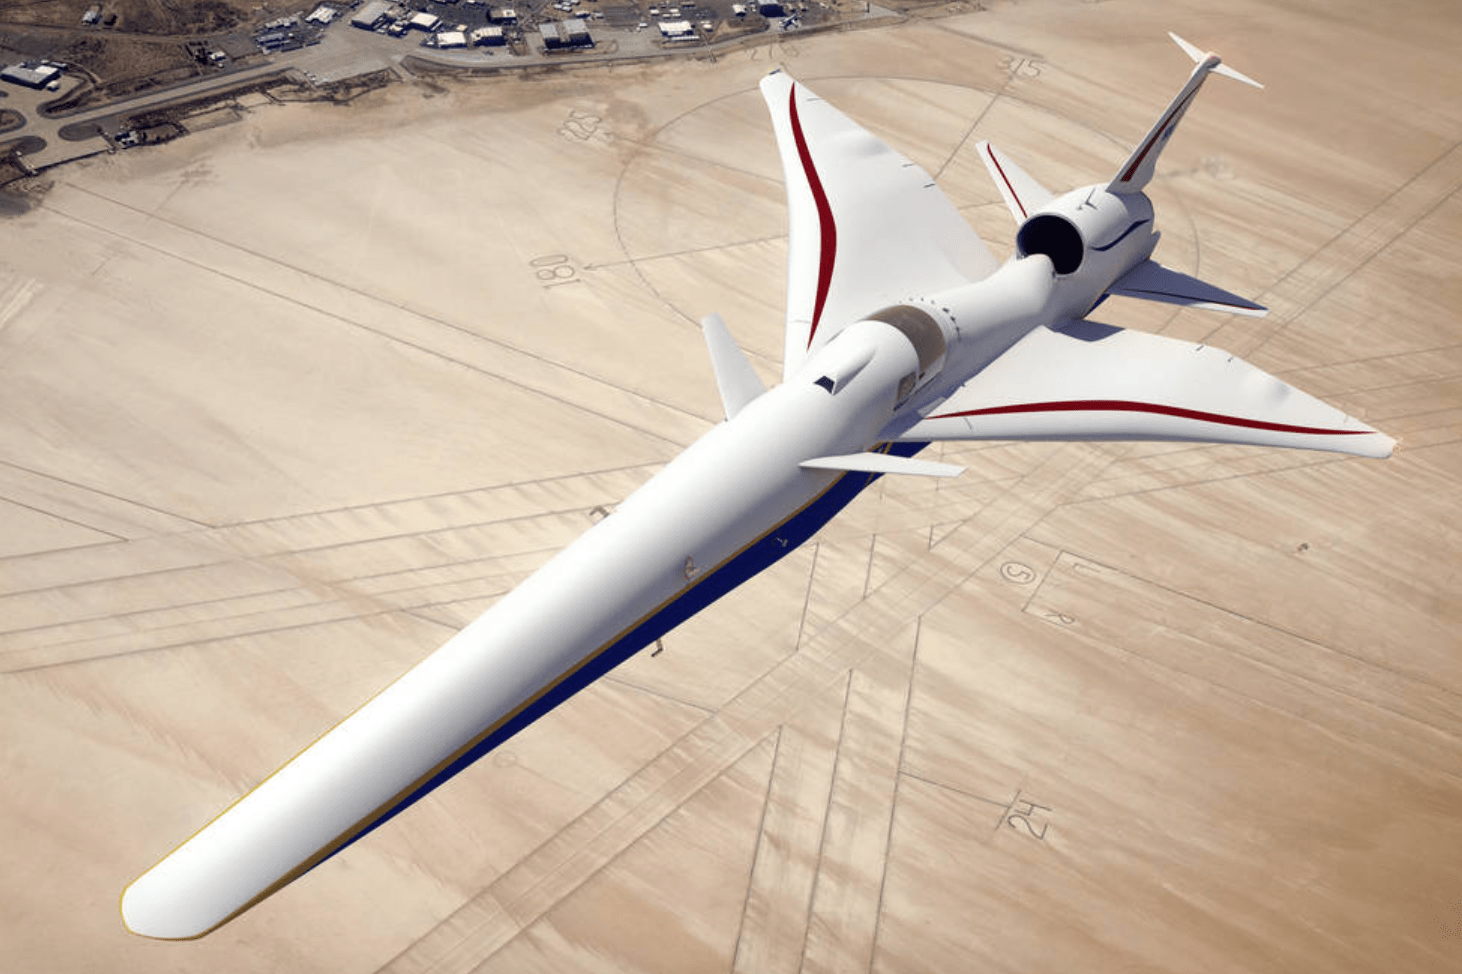 Nasa 'Concorde II' supersonic jet will take to the skies in 2021